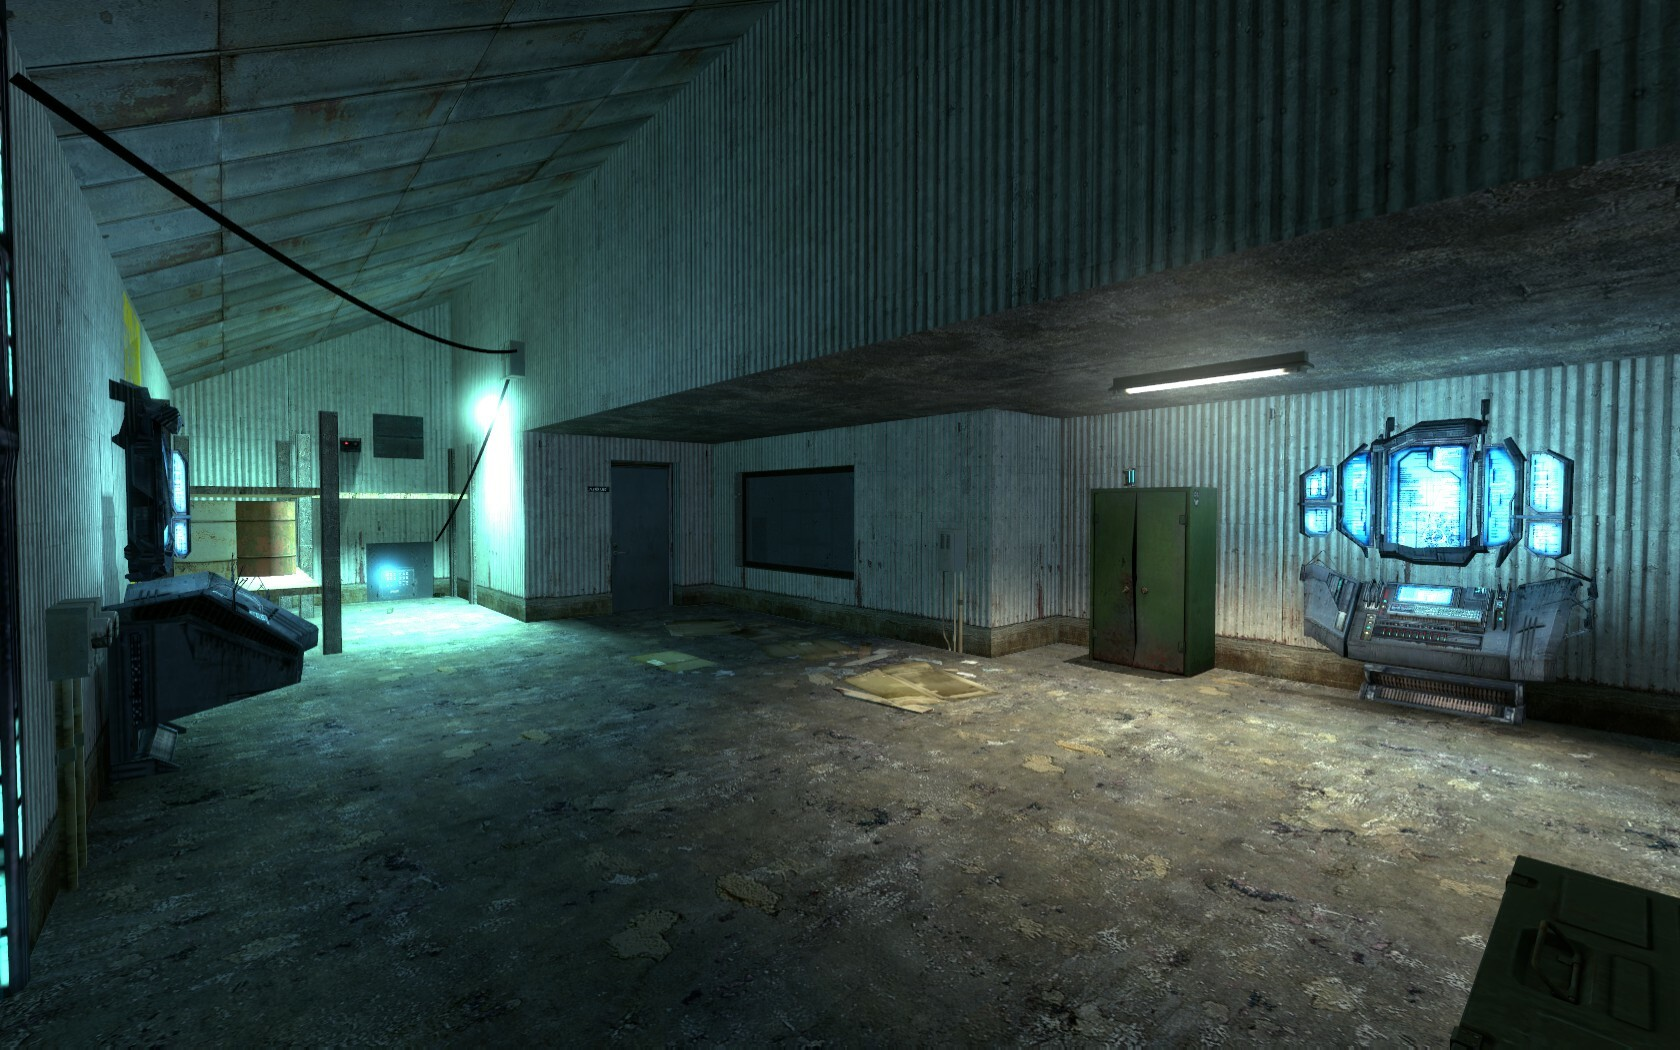 The puzzle in this room has been highlighted with a bright blue light. The players attention will be drawn here when looking around.